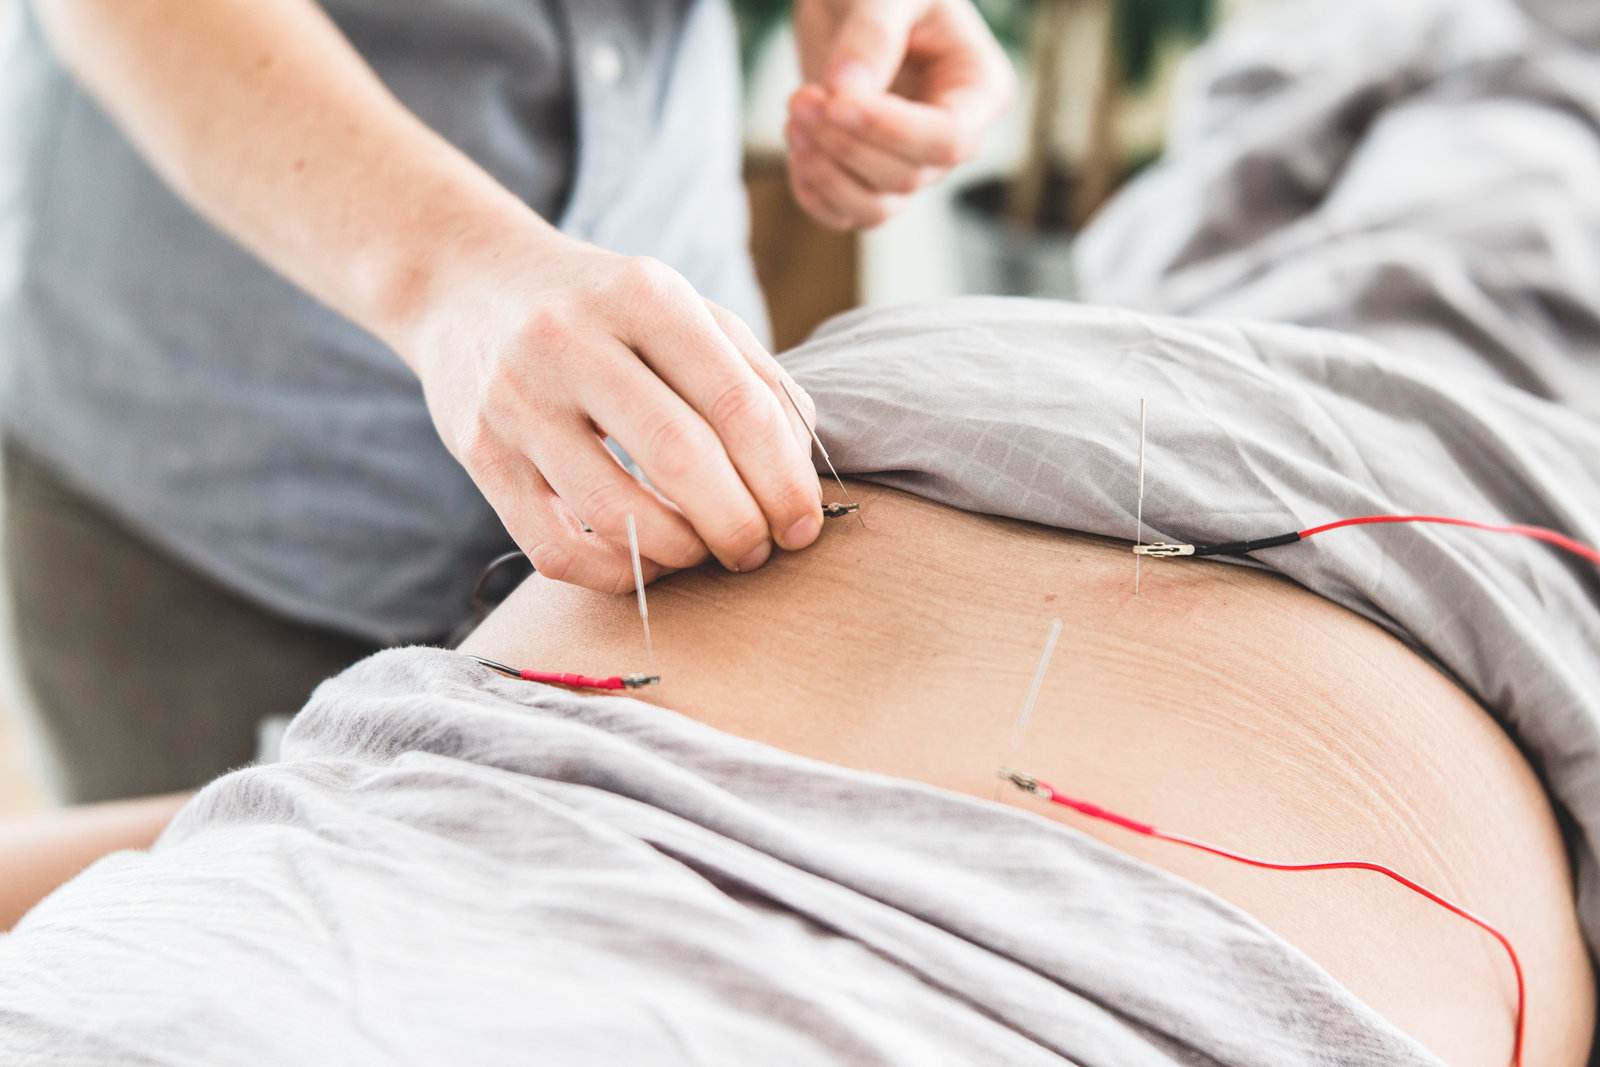 Electroacupuncture for pain relief